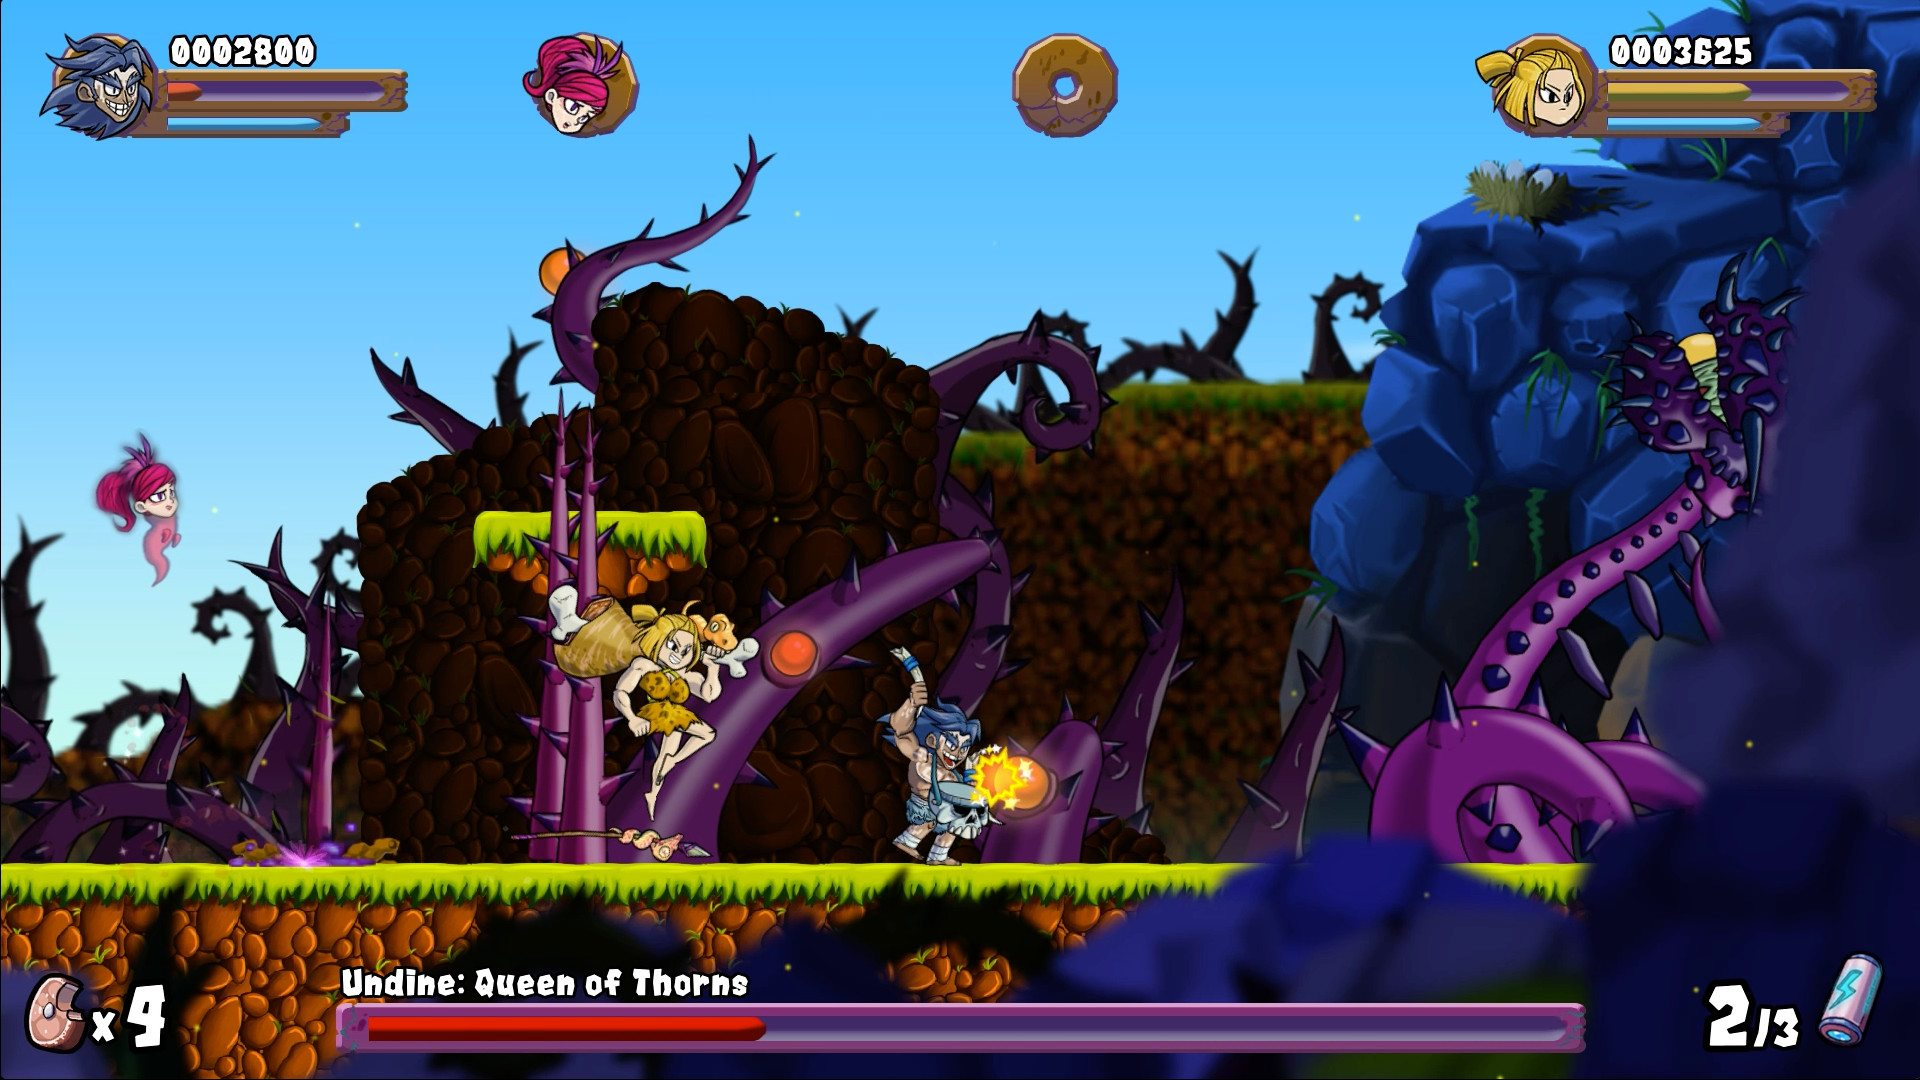 caveman warriors boss fight 1